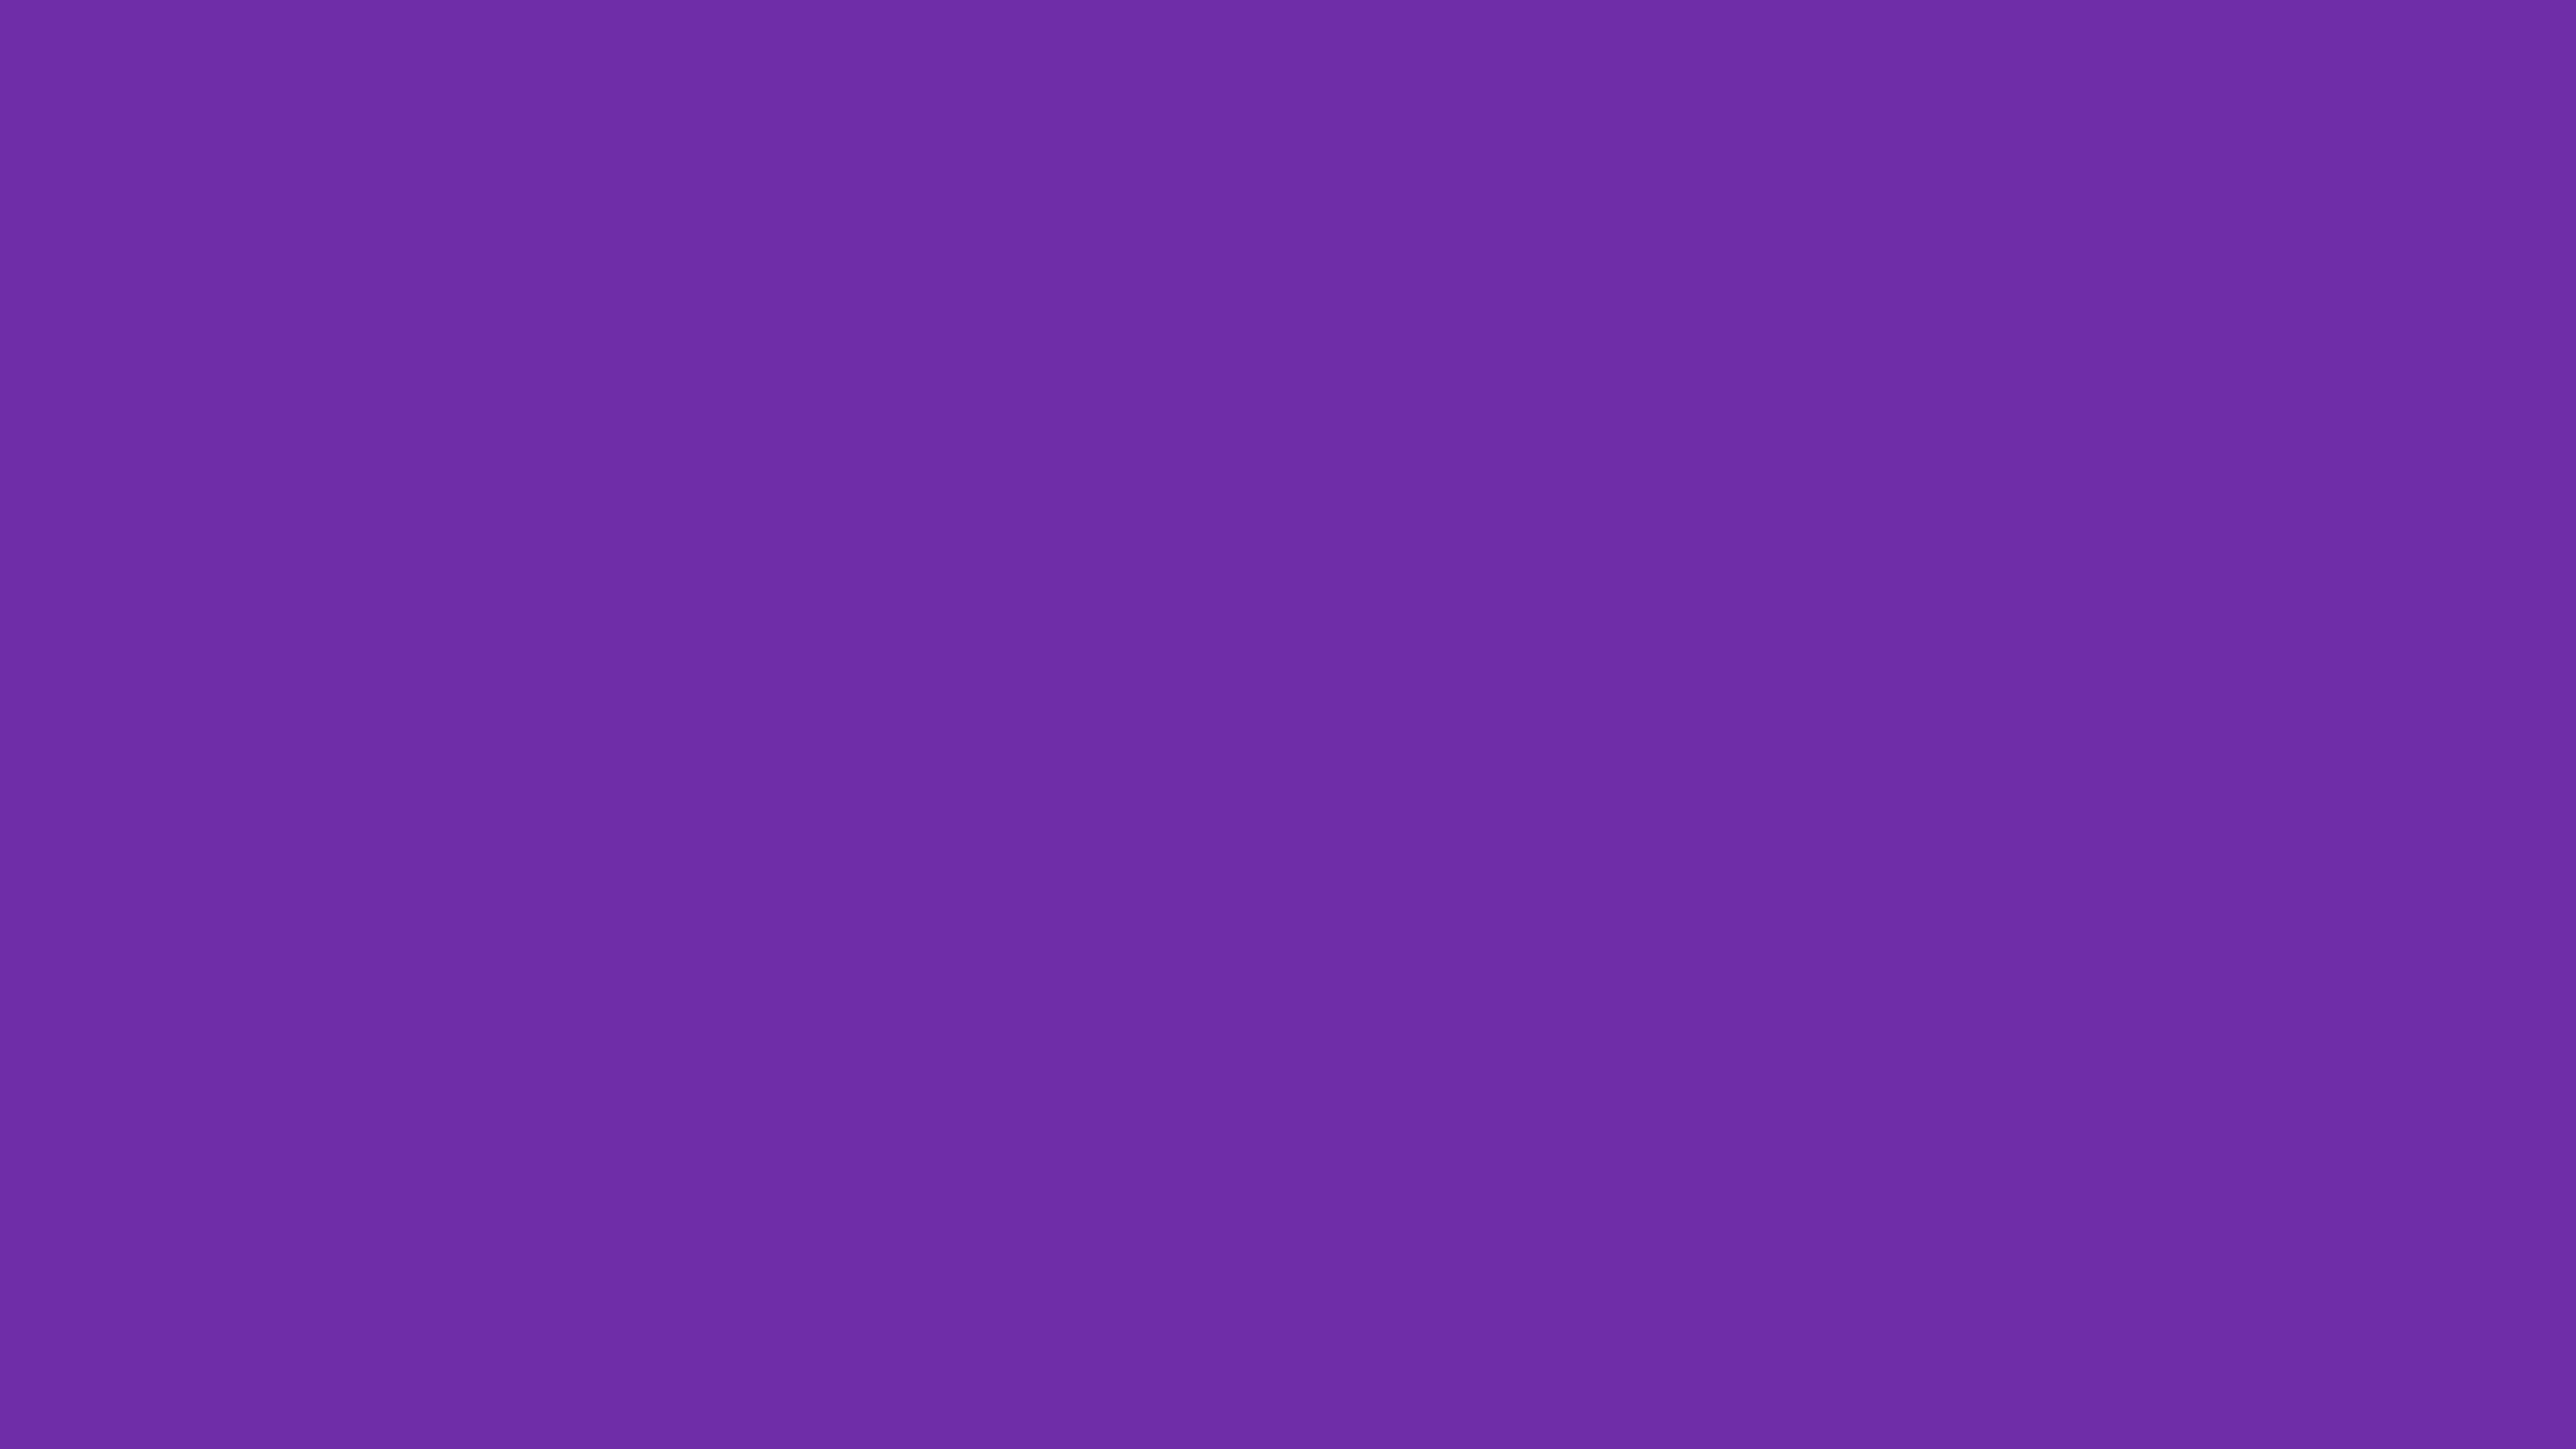 3840x2160 Grape Solid Color Background